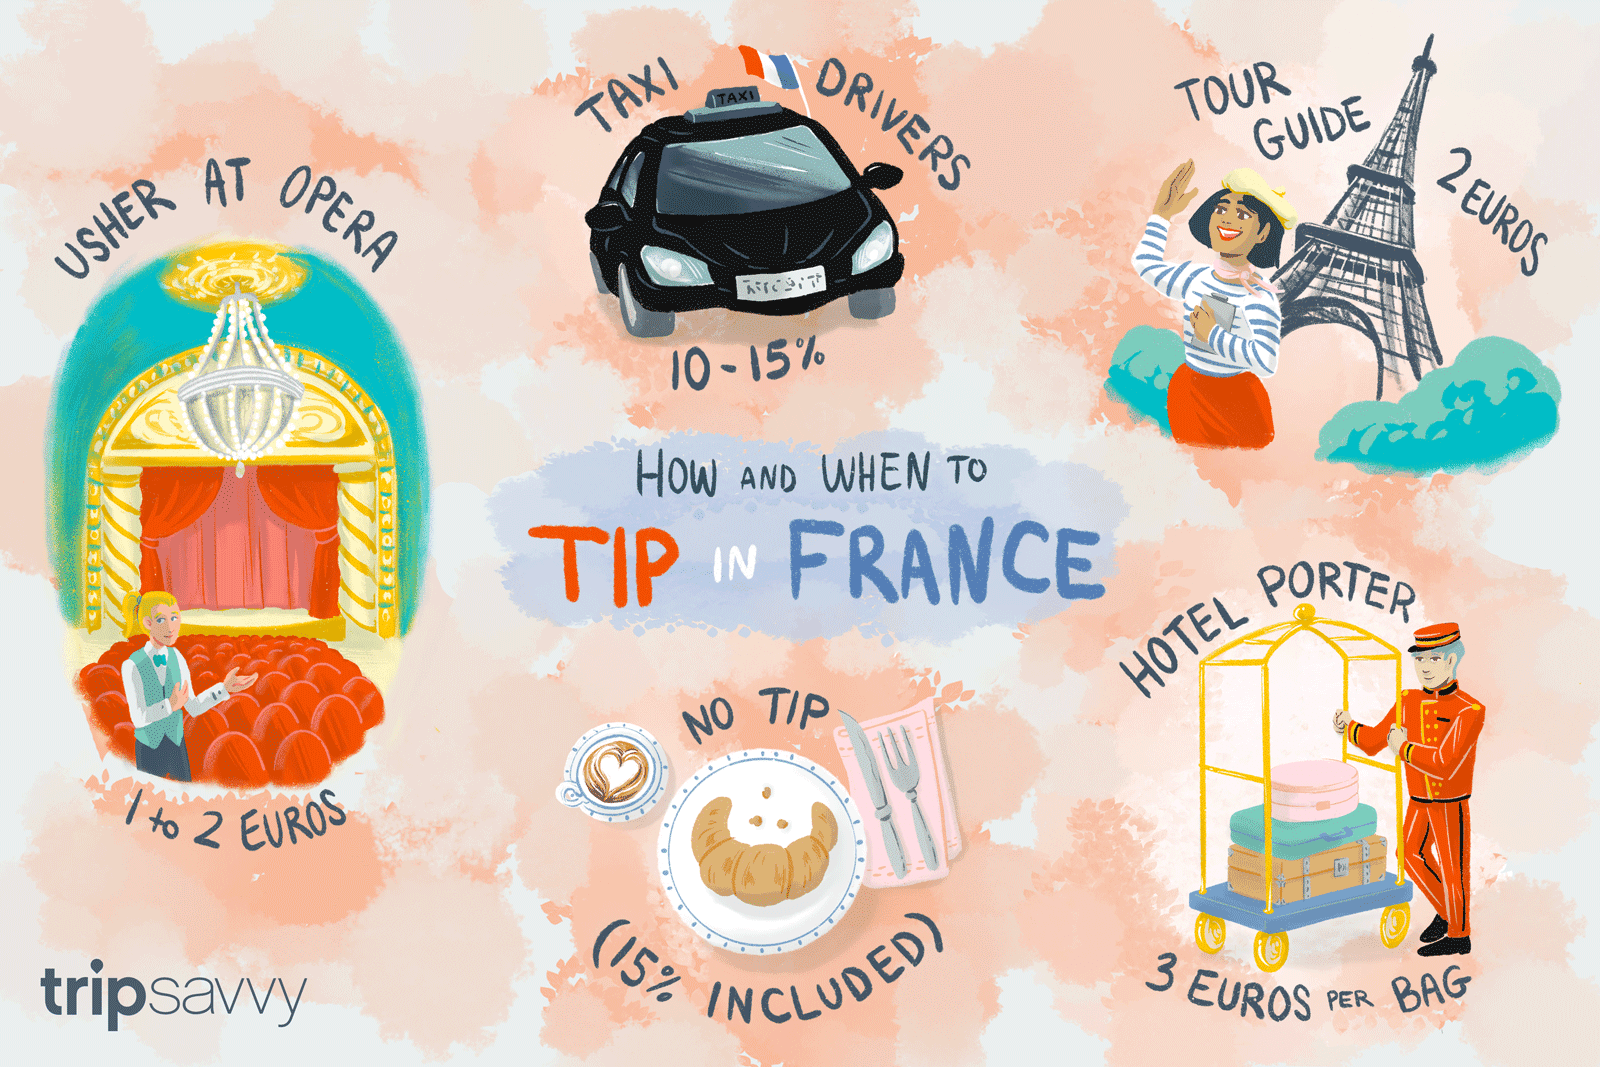 Tipping in France: Who, When, and How Much